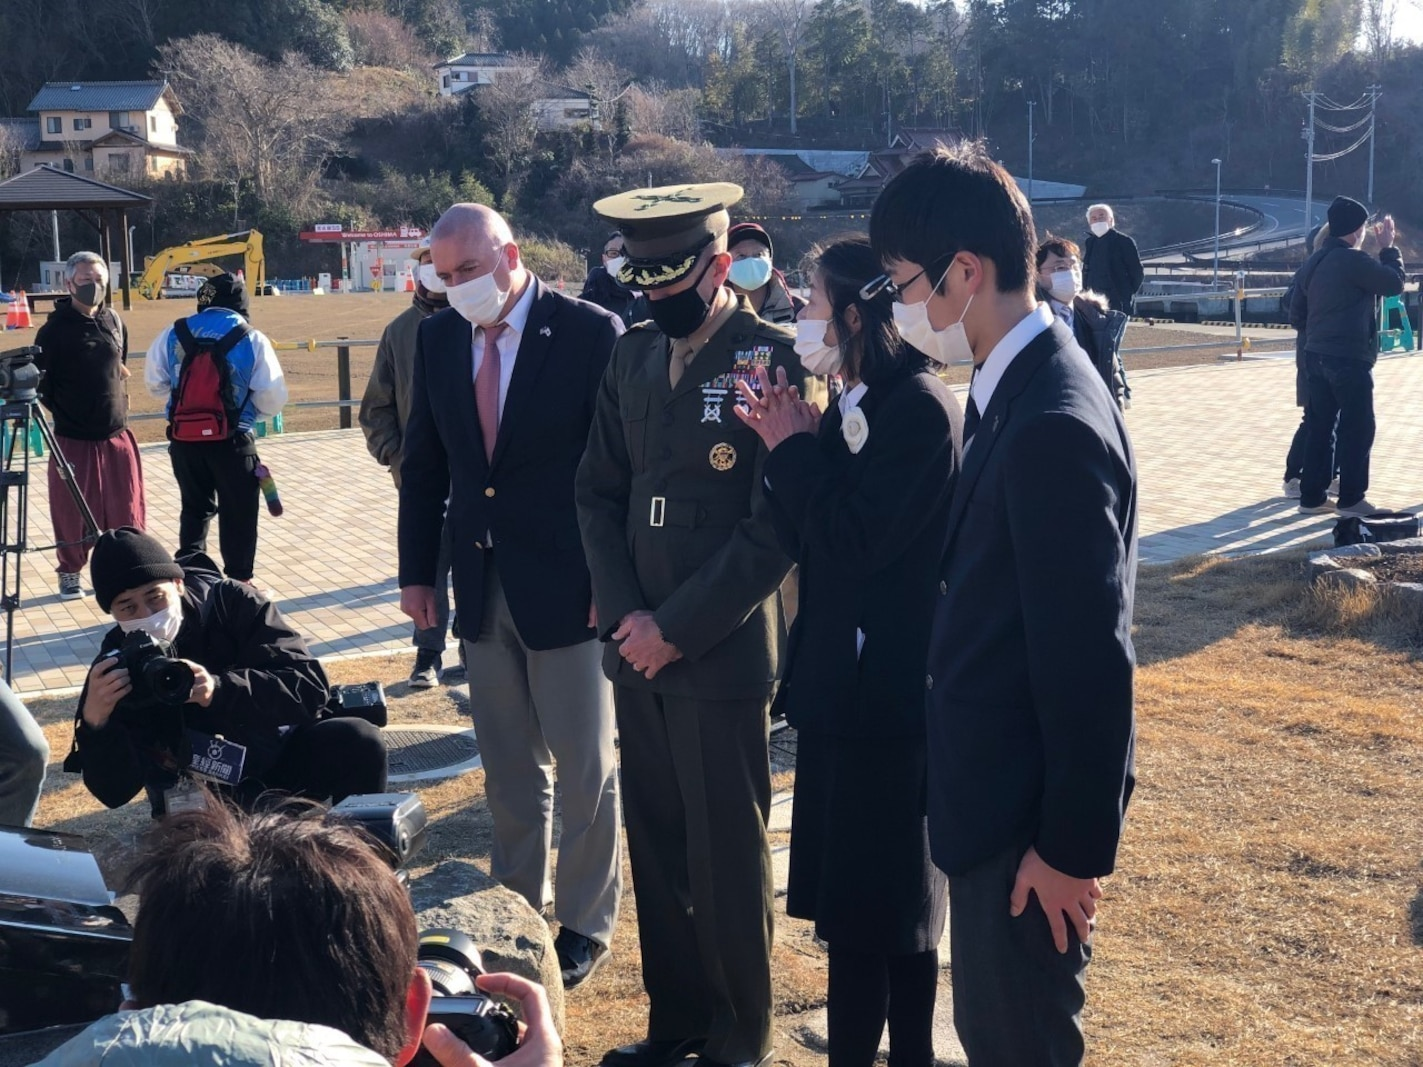 """On March 8, Marines from the U.S. Embassy Tokyo and 3D Marine Expeditionary Brigade attended the Oshima Island 10-year anniversary of the 3-11 Great East Japan Earthquake, tsunami and nuclear disaster and subsequent US response Operation Tomodachi. The people of the island unveiled a memorial inscribed with """"Friendship Forever,"""" honoring the strong relationship between themselves and Okinawa Marines."""